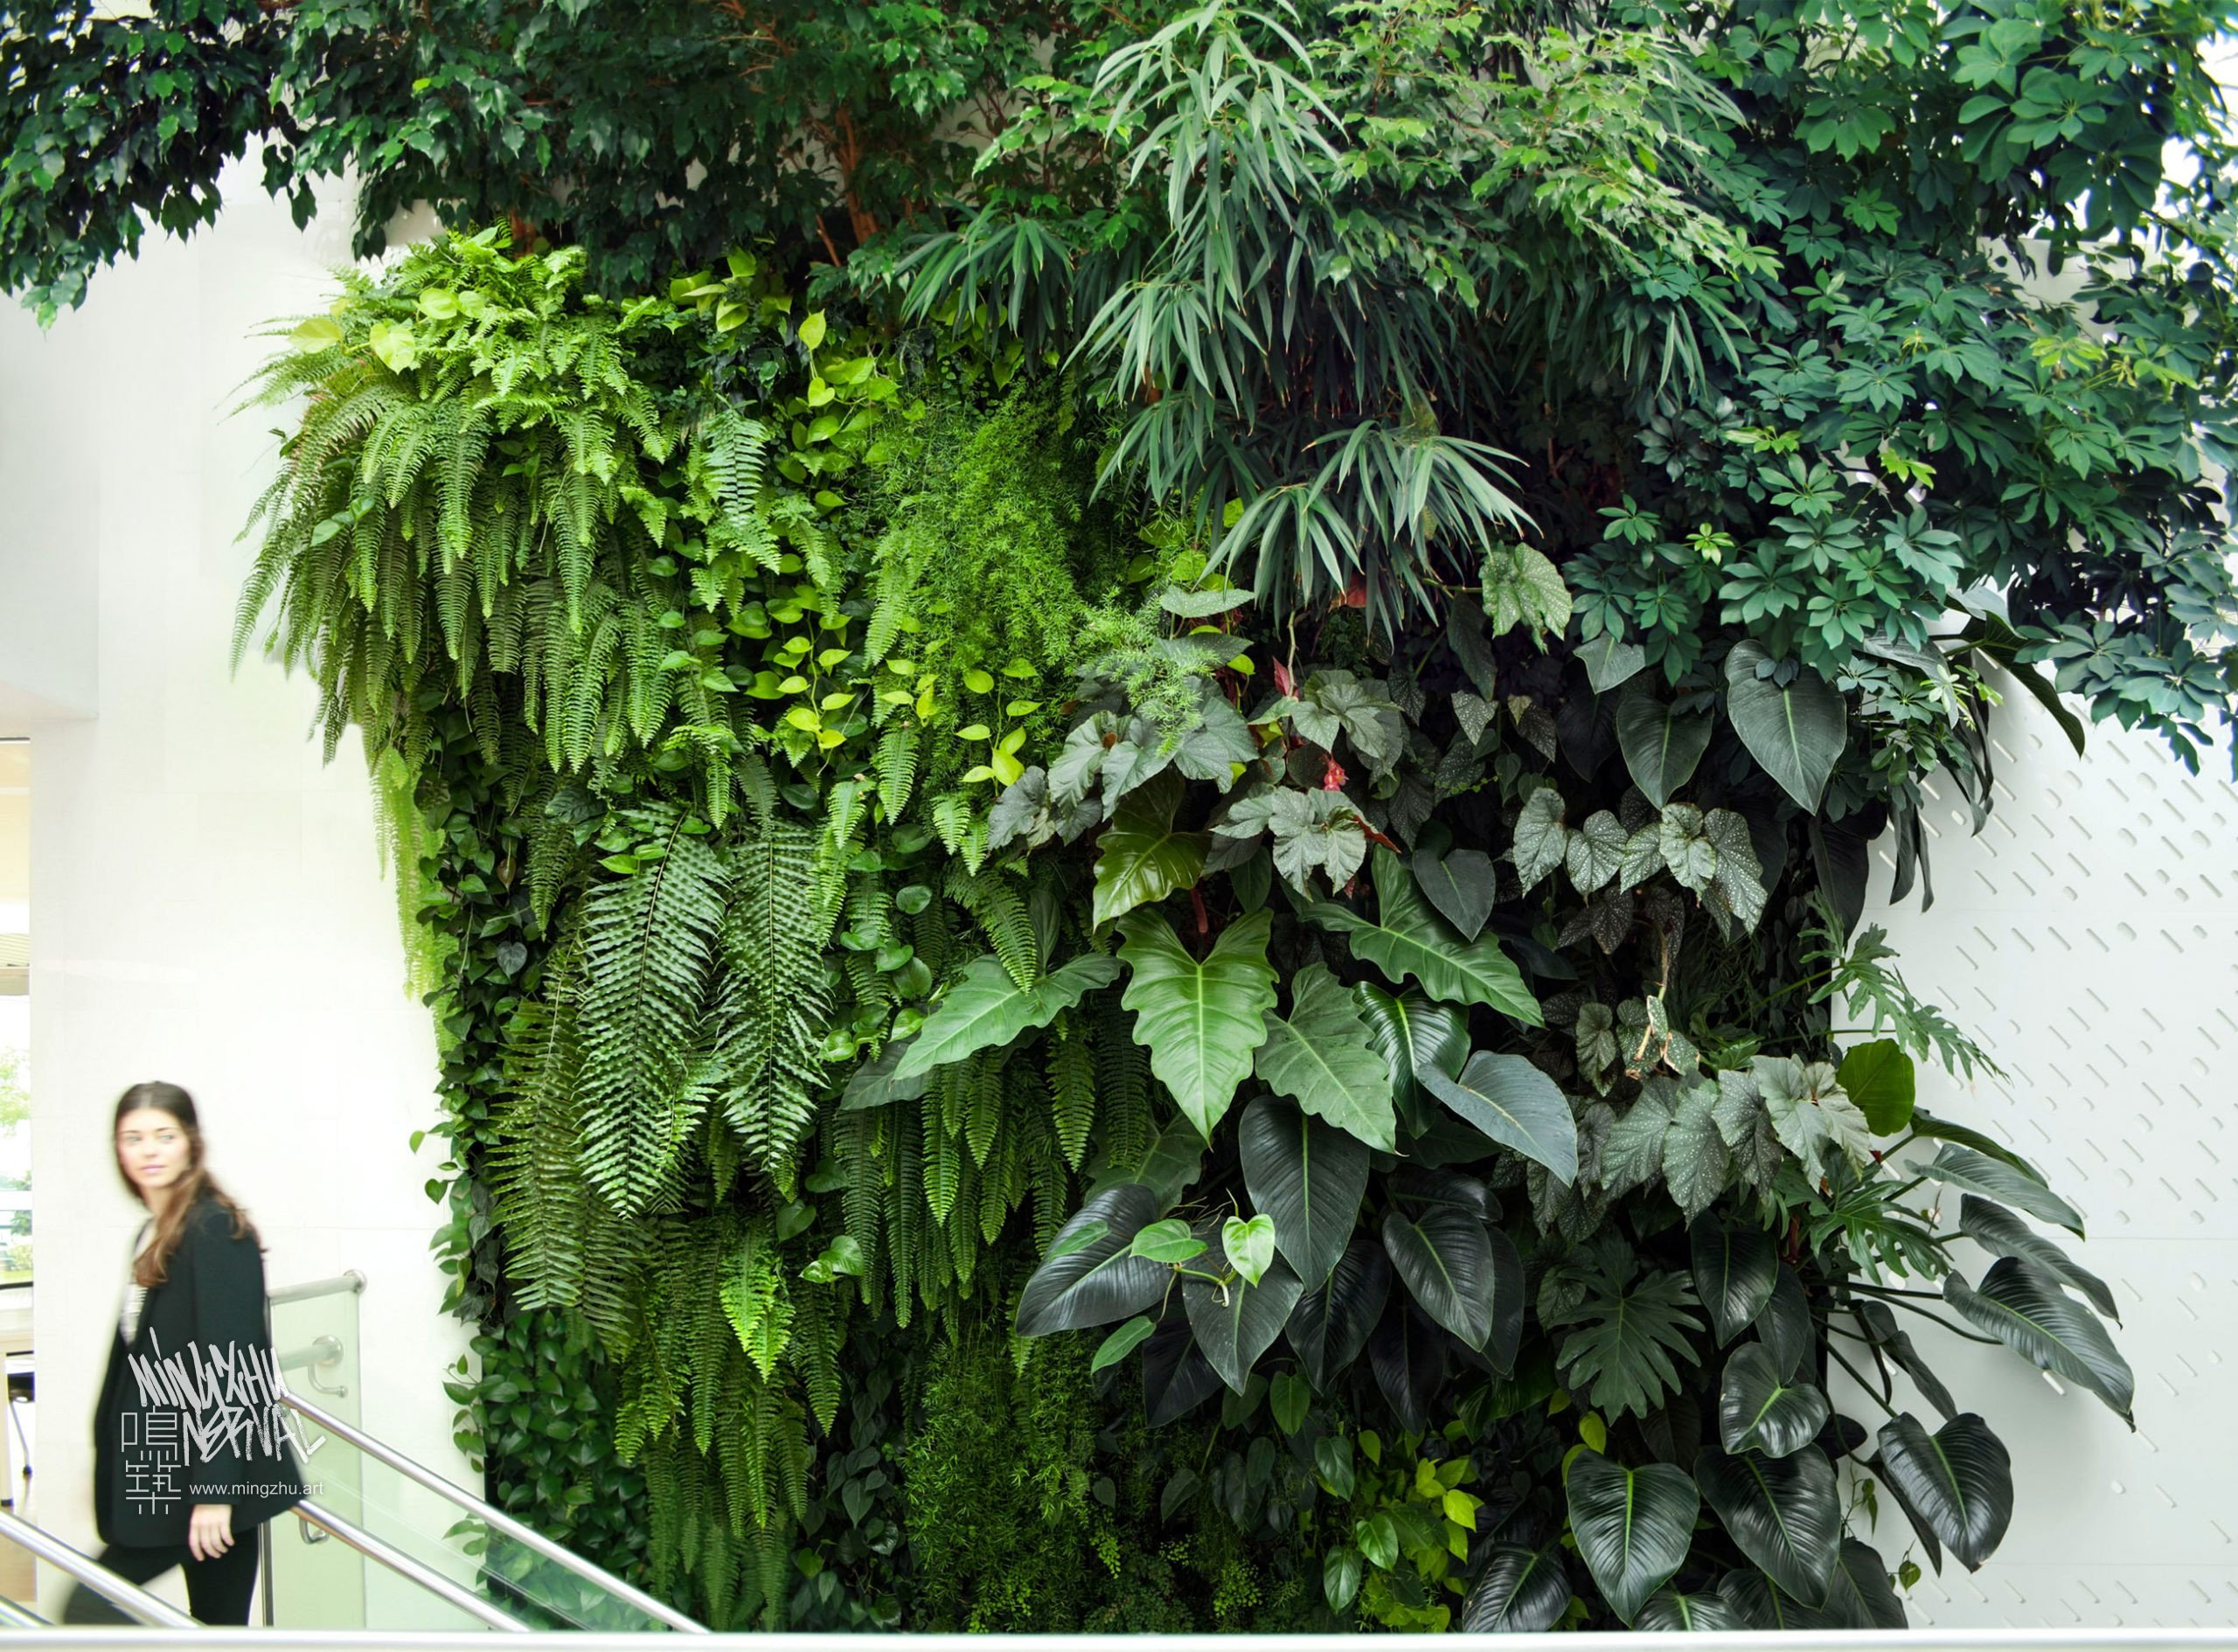 Mingzhu Nerval vertical living wall experts created the best garden design art at Nu Skin in Shanghai, 2013